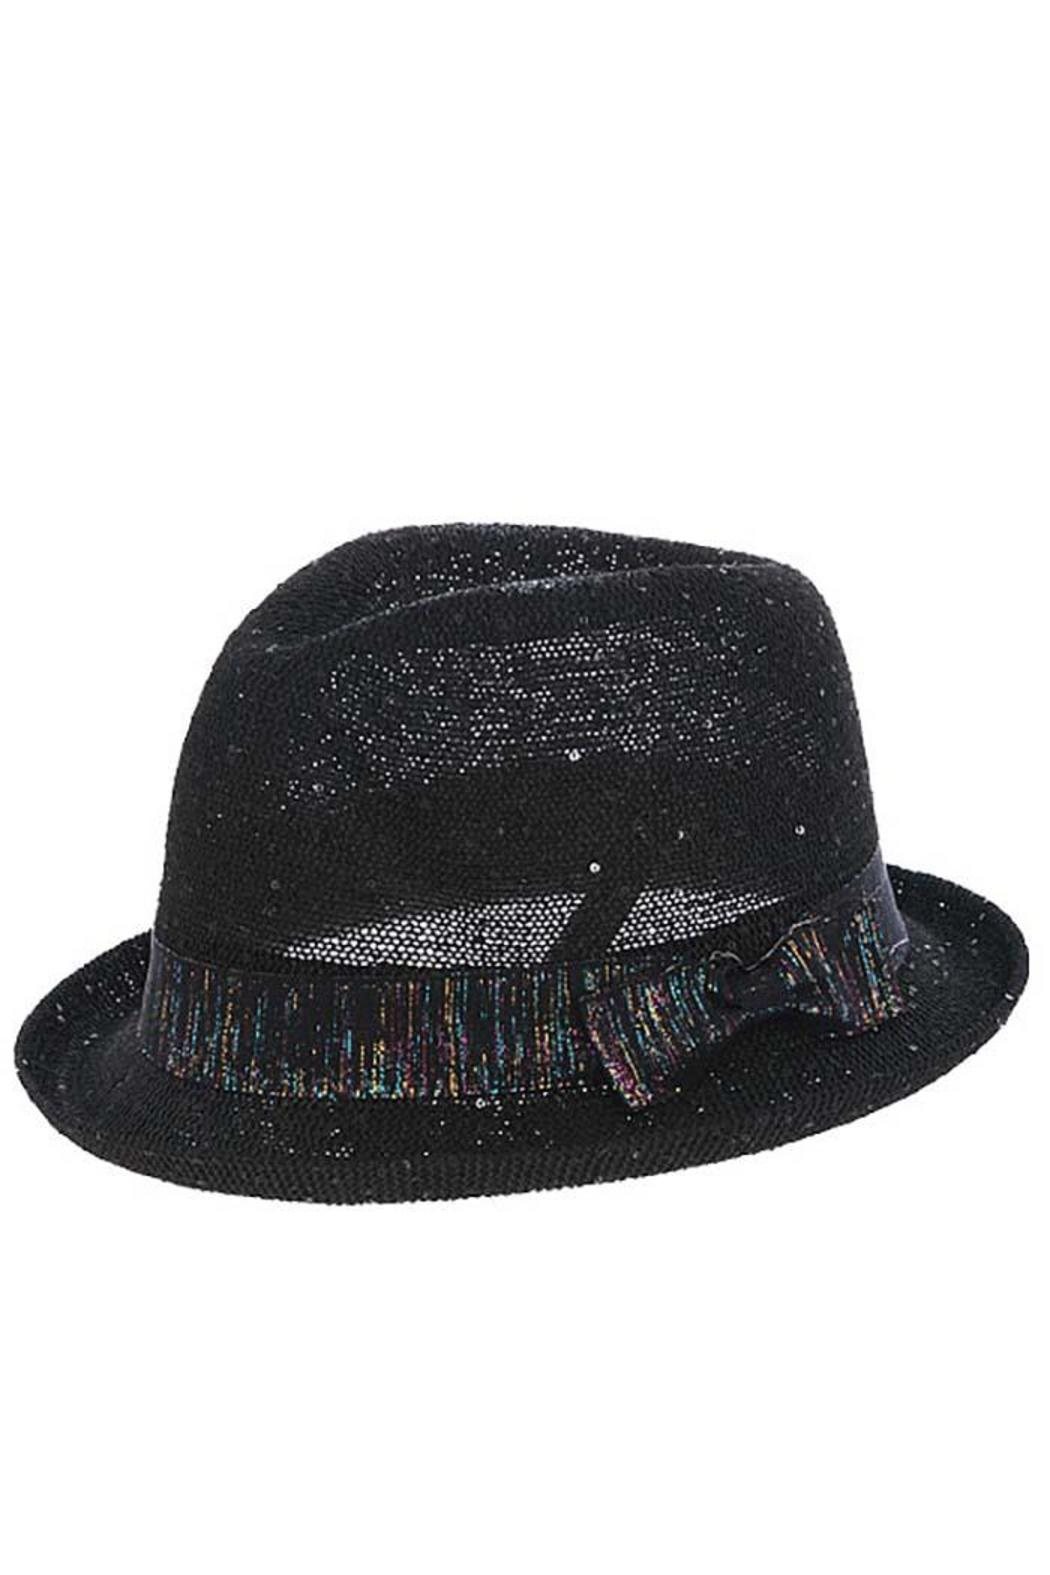 The Hatter Company Sparkly Woven Fedora - Front Cropped Image